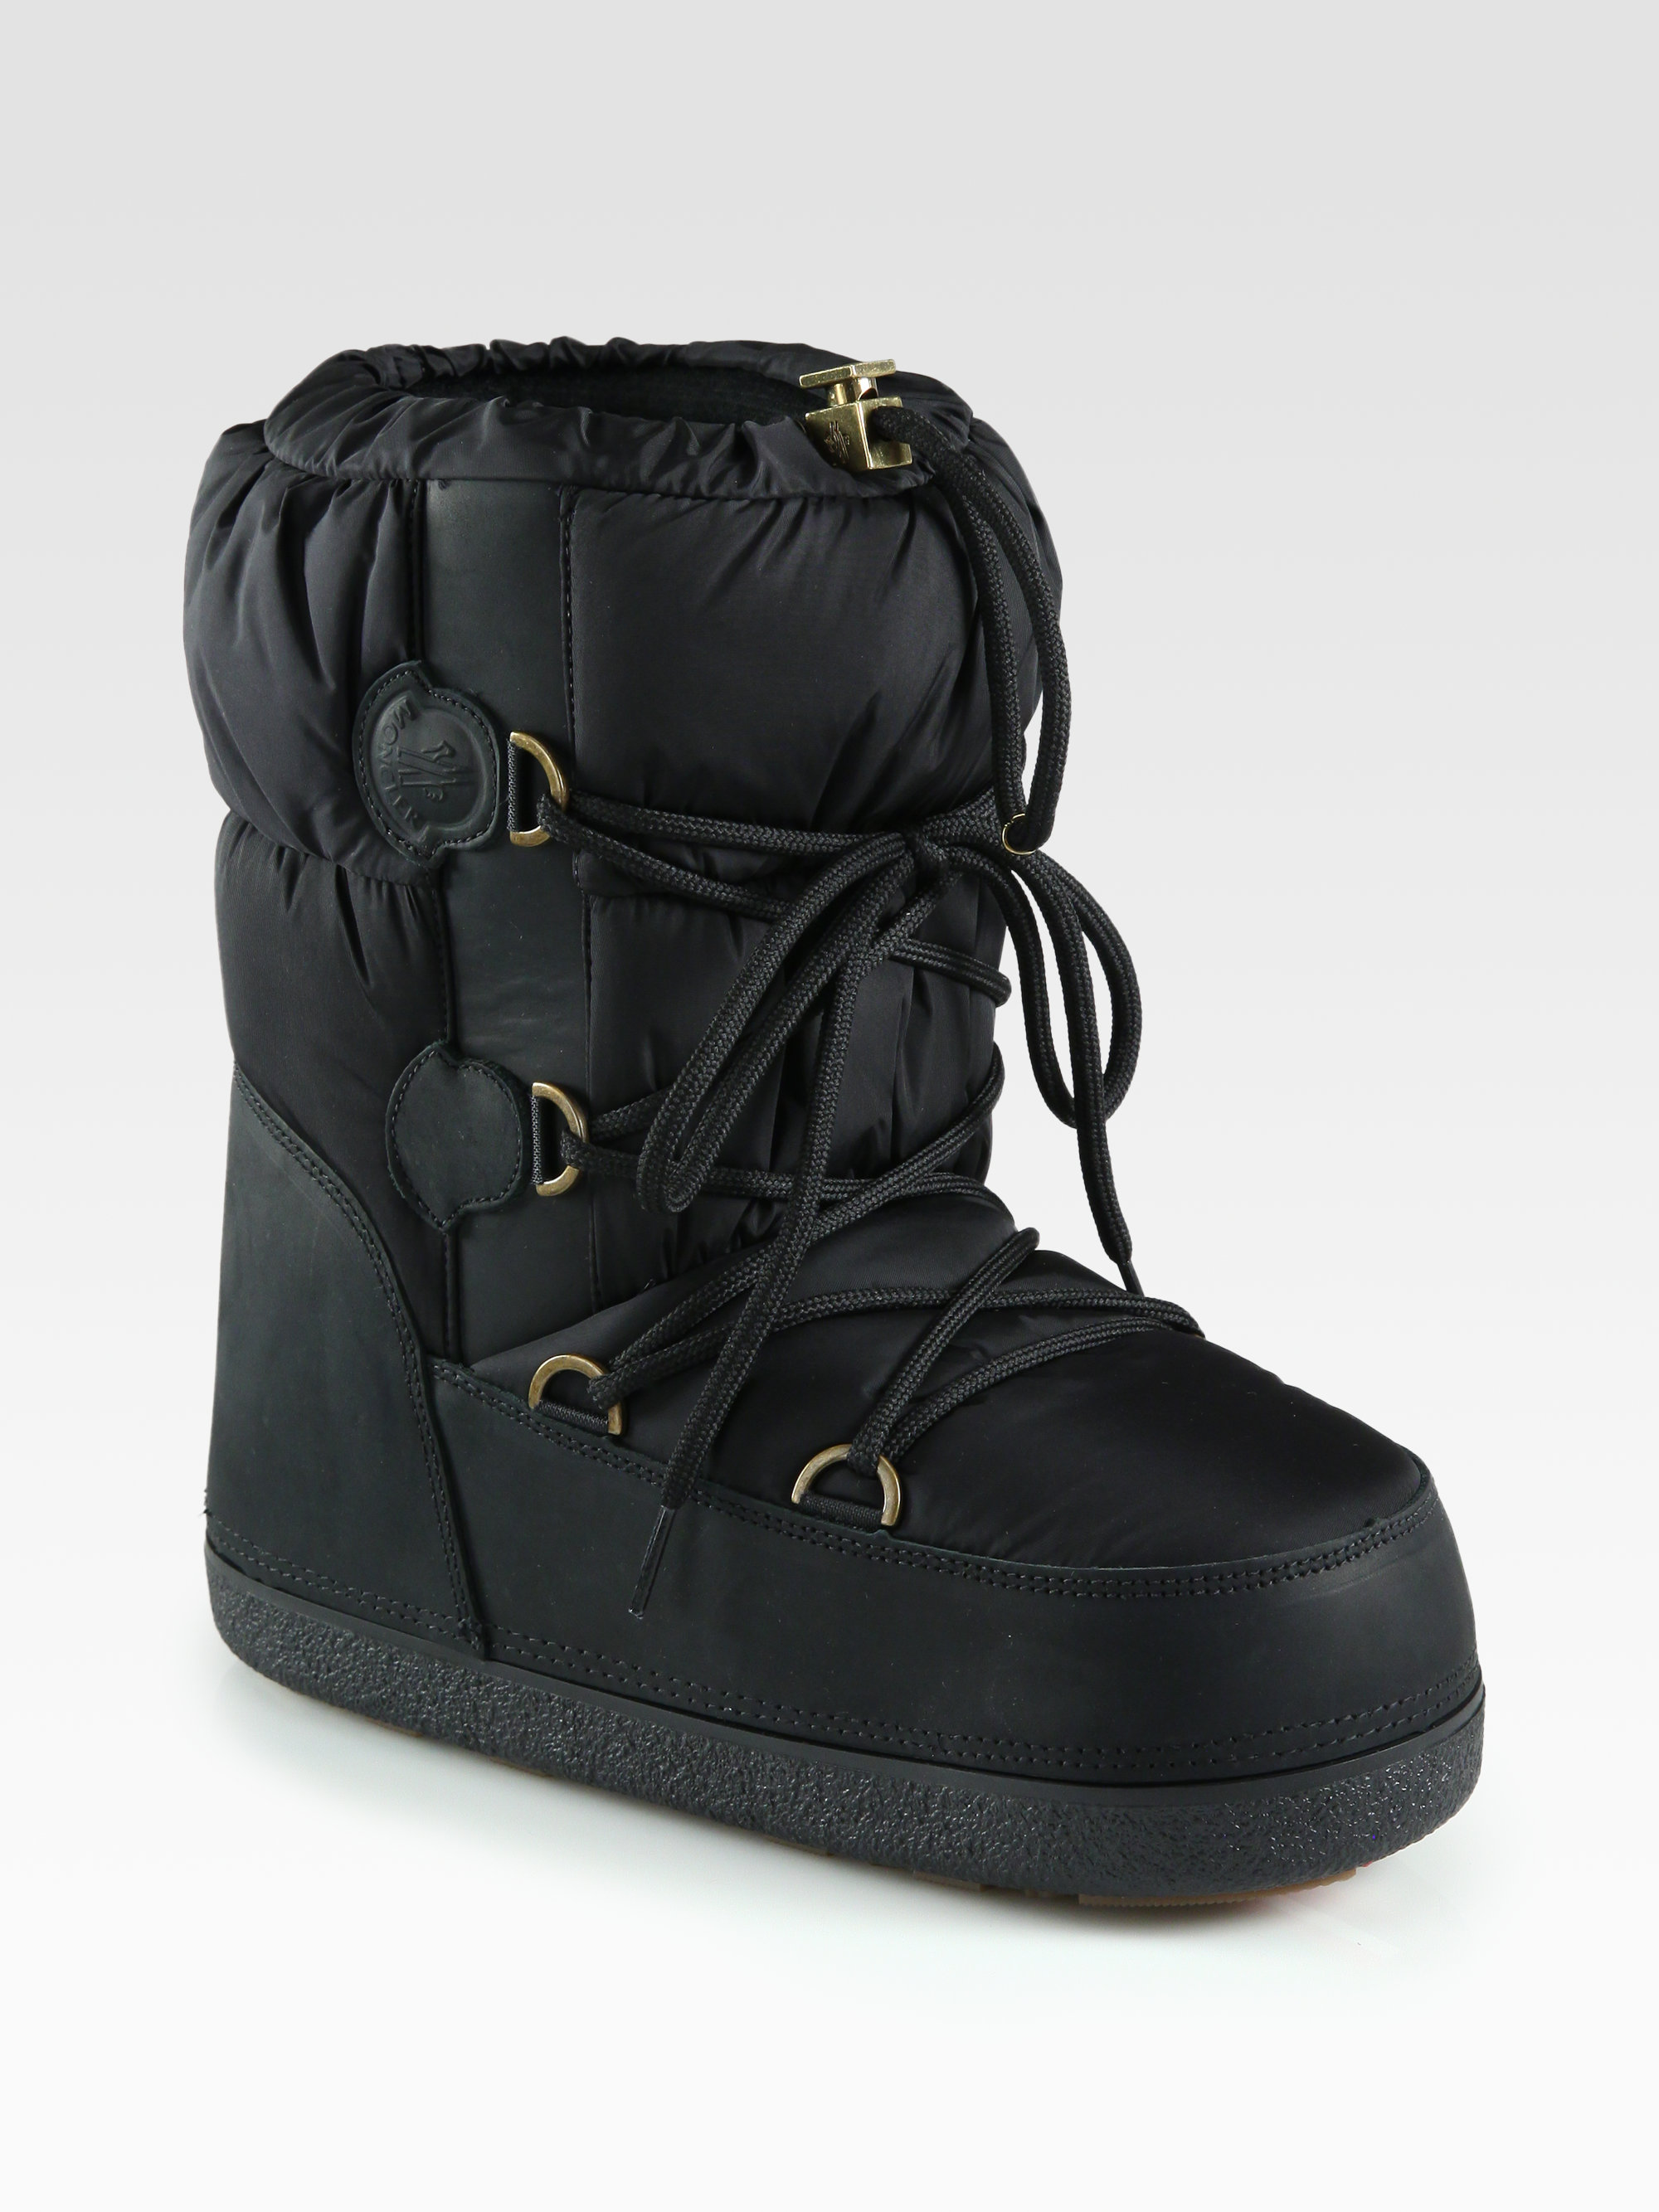 moncler moon boots -